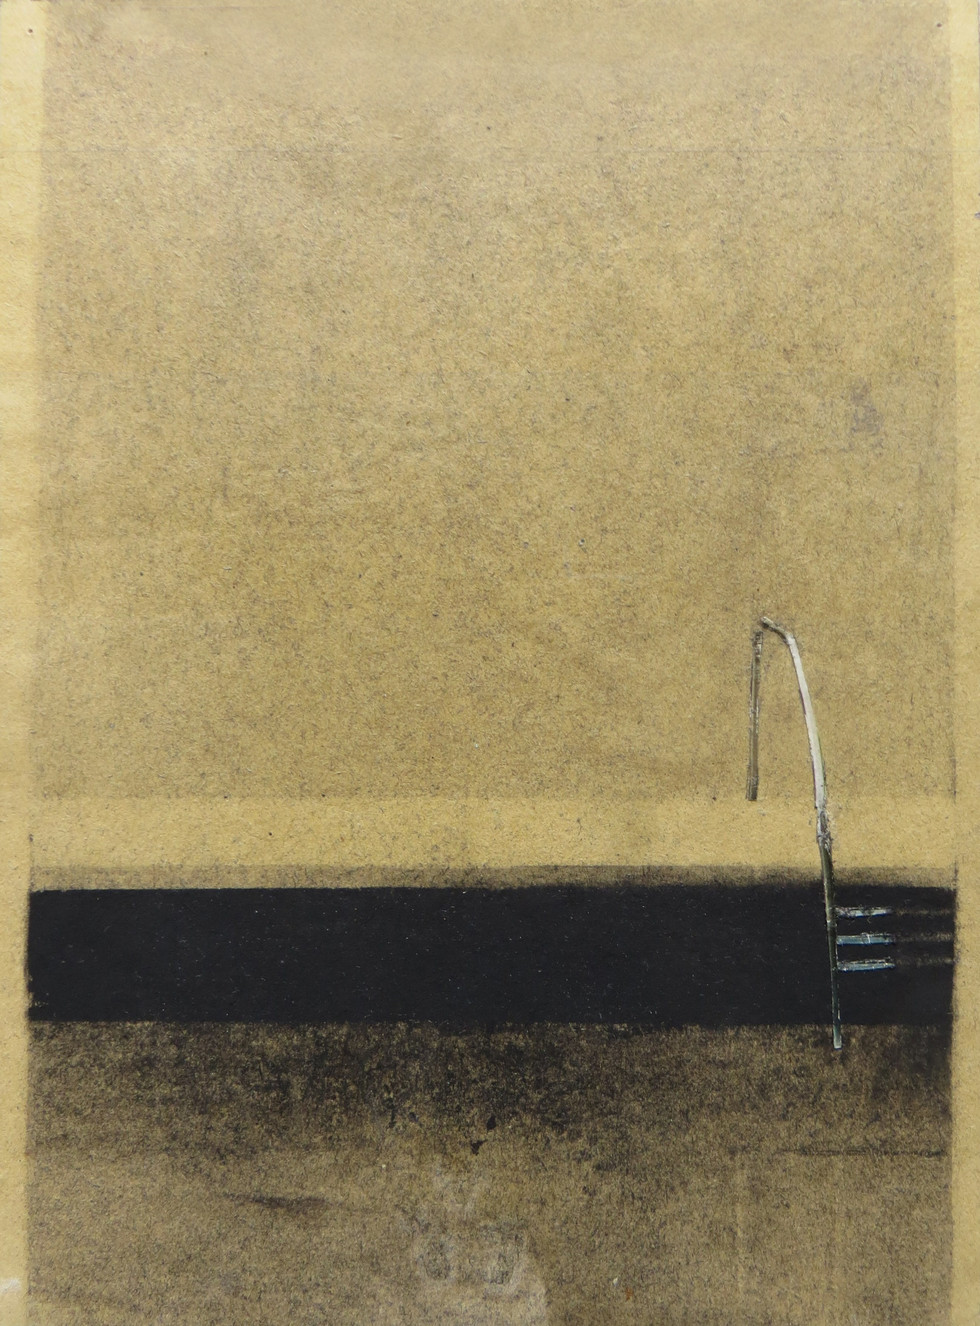 Observing in silence, series of drawings from 2013 to 2015, charcoal on paper, 20x15 cm